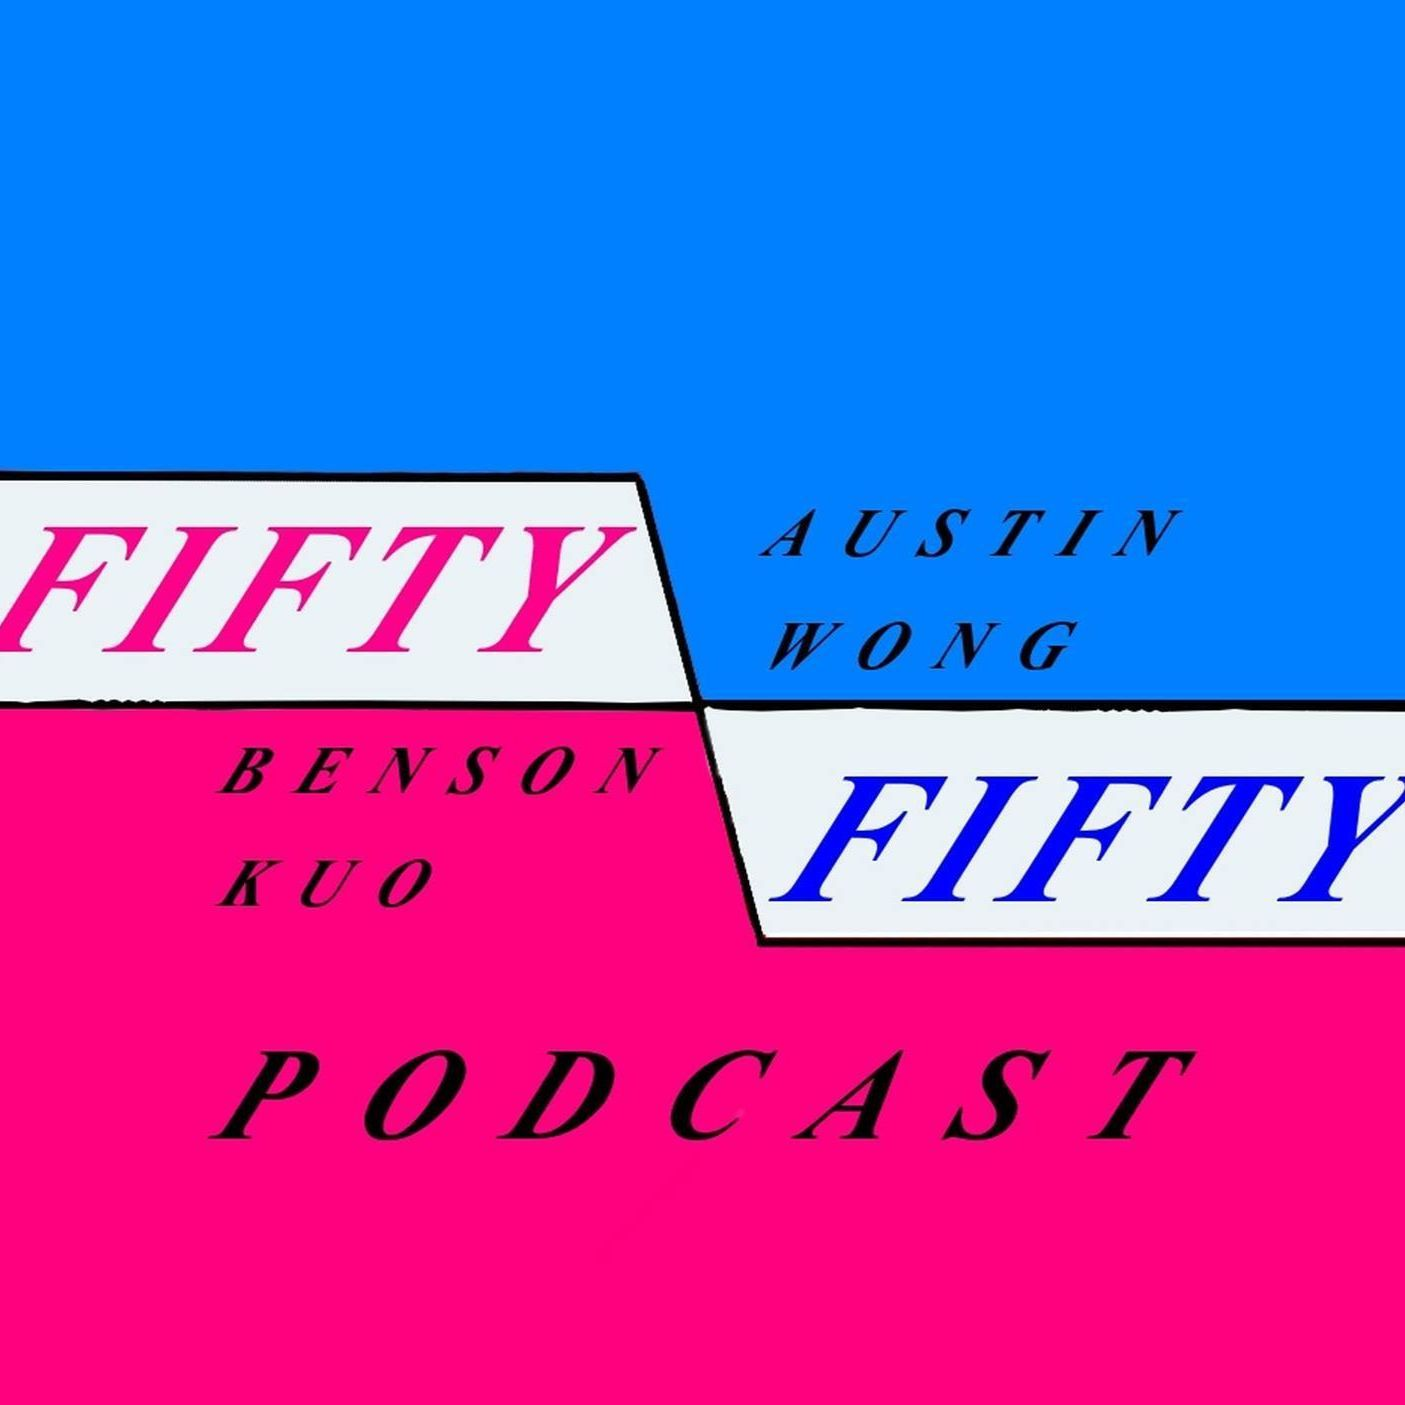 FiftyFifty Ep. 4: Bad Revenge // Conversation Starters